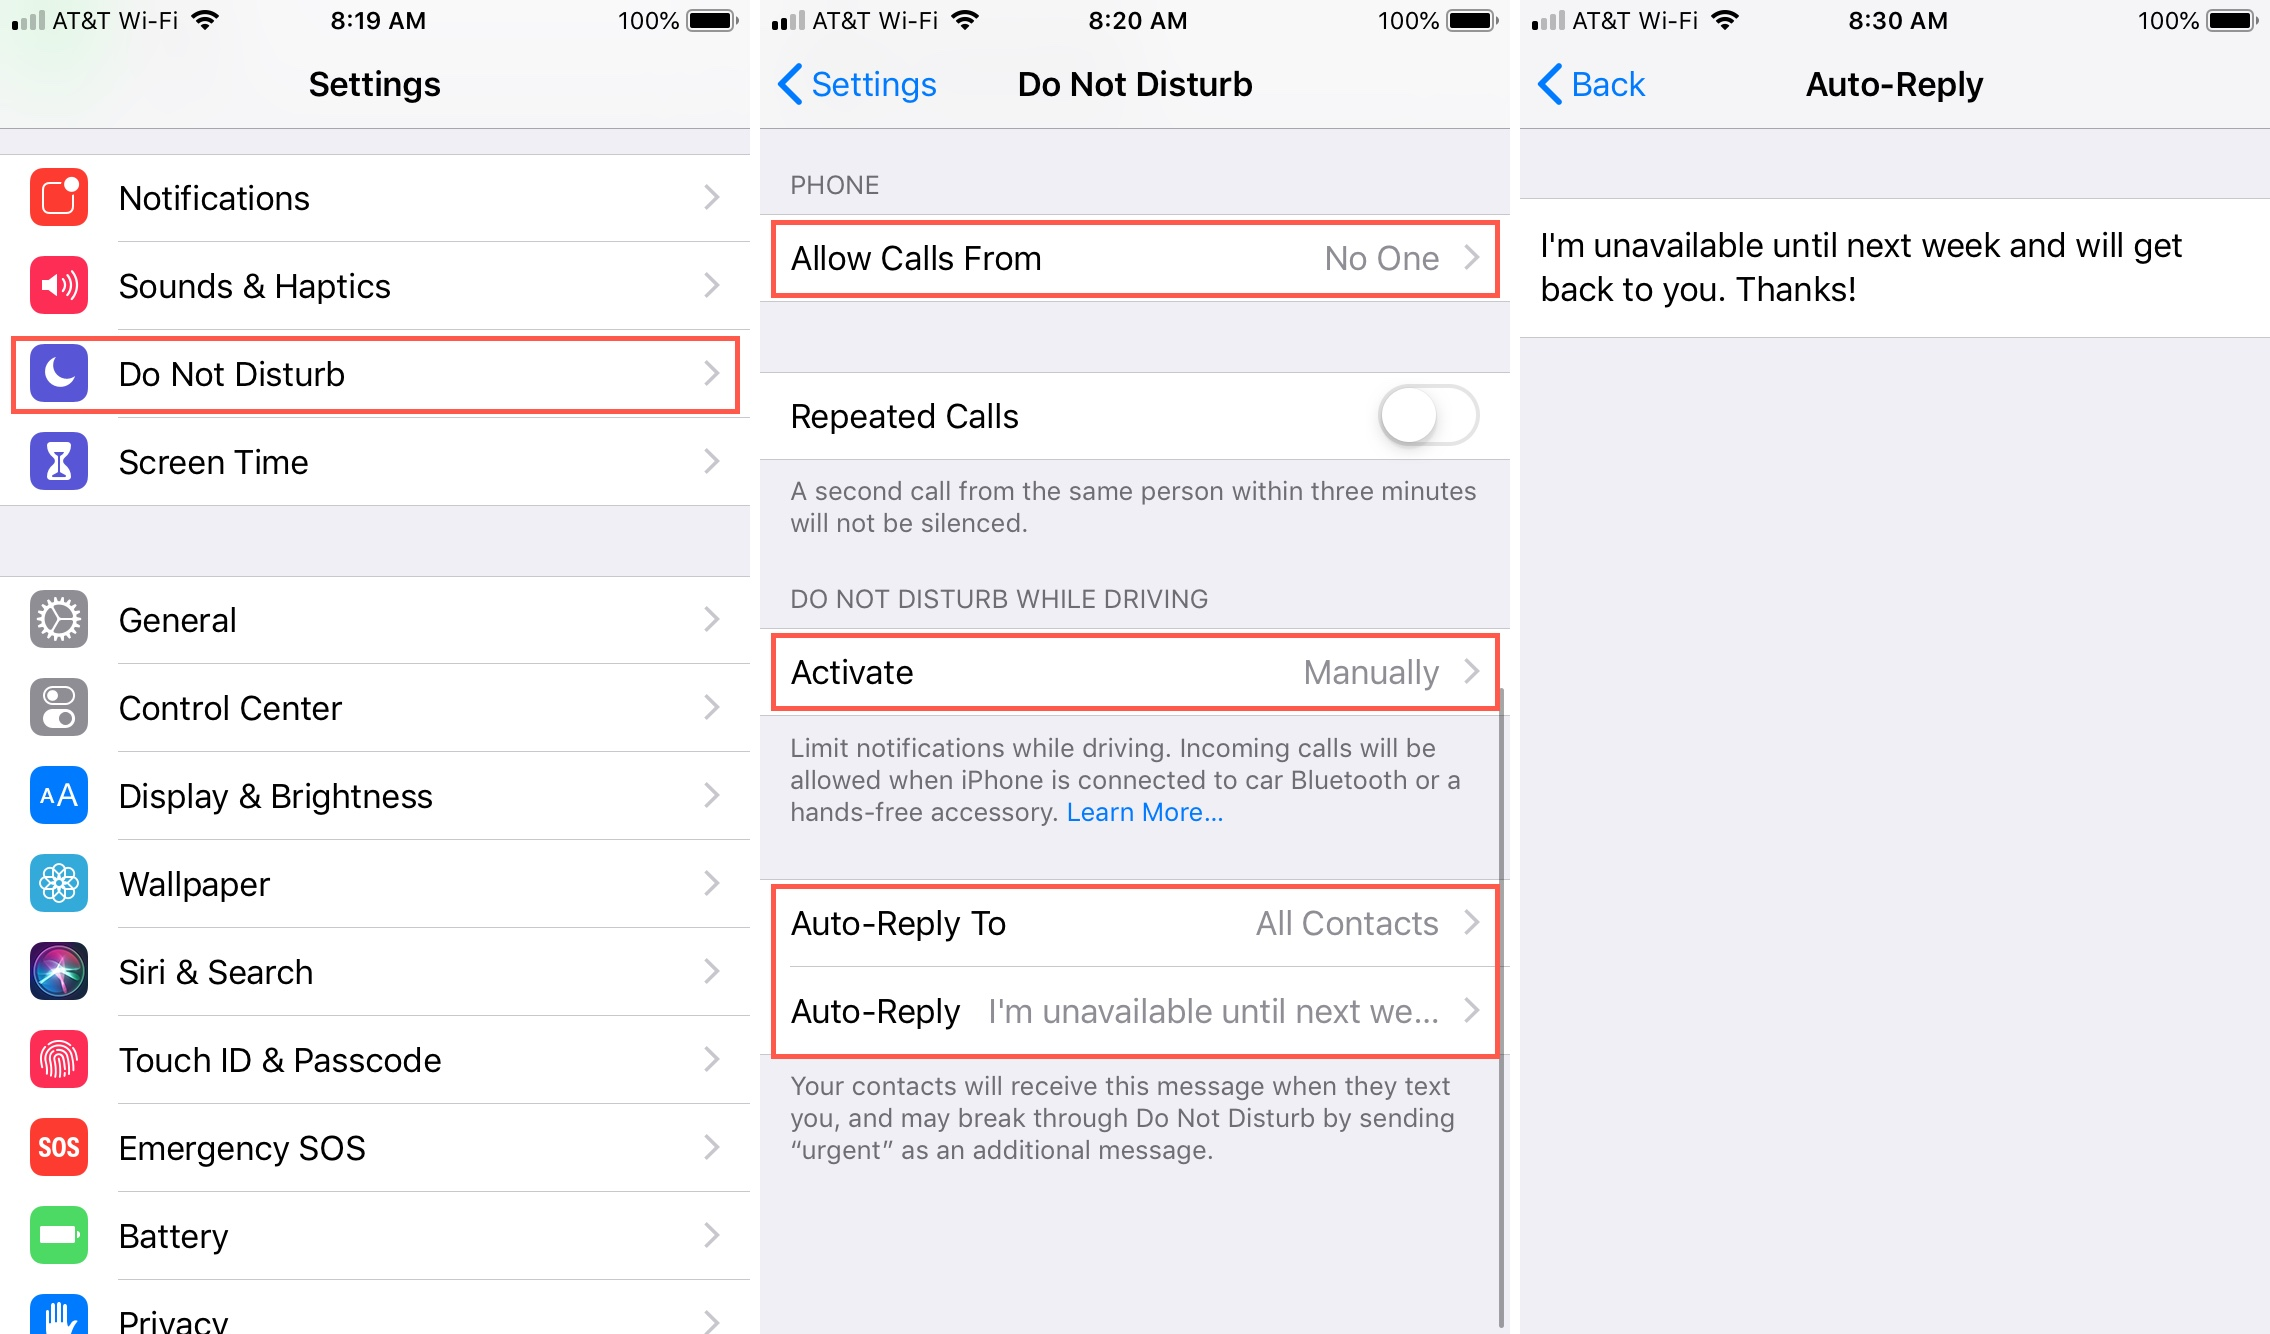 How to set an automatic text reply for phone calls and text